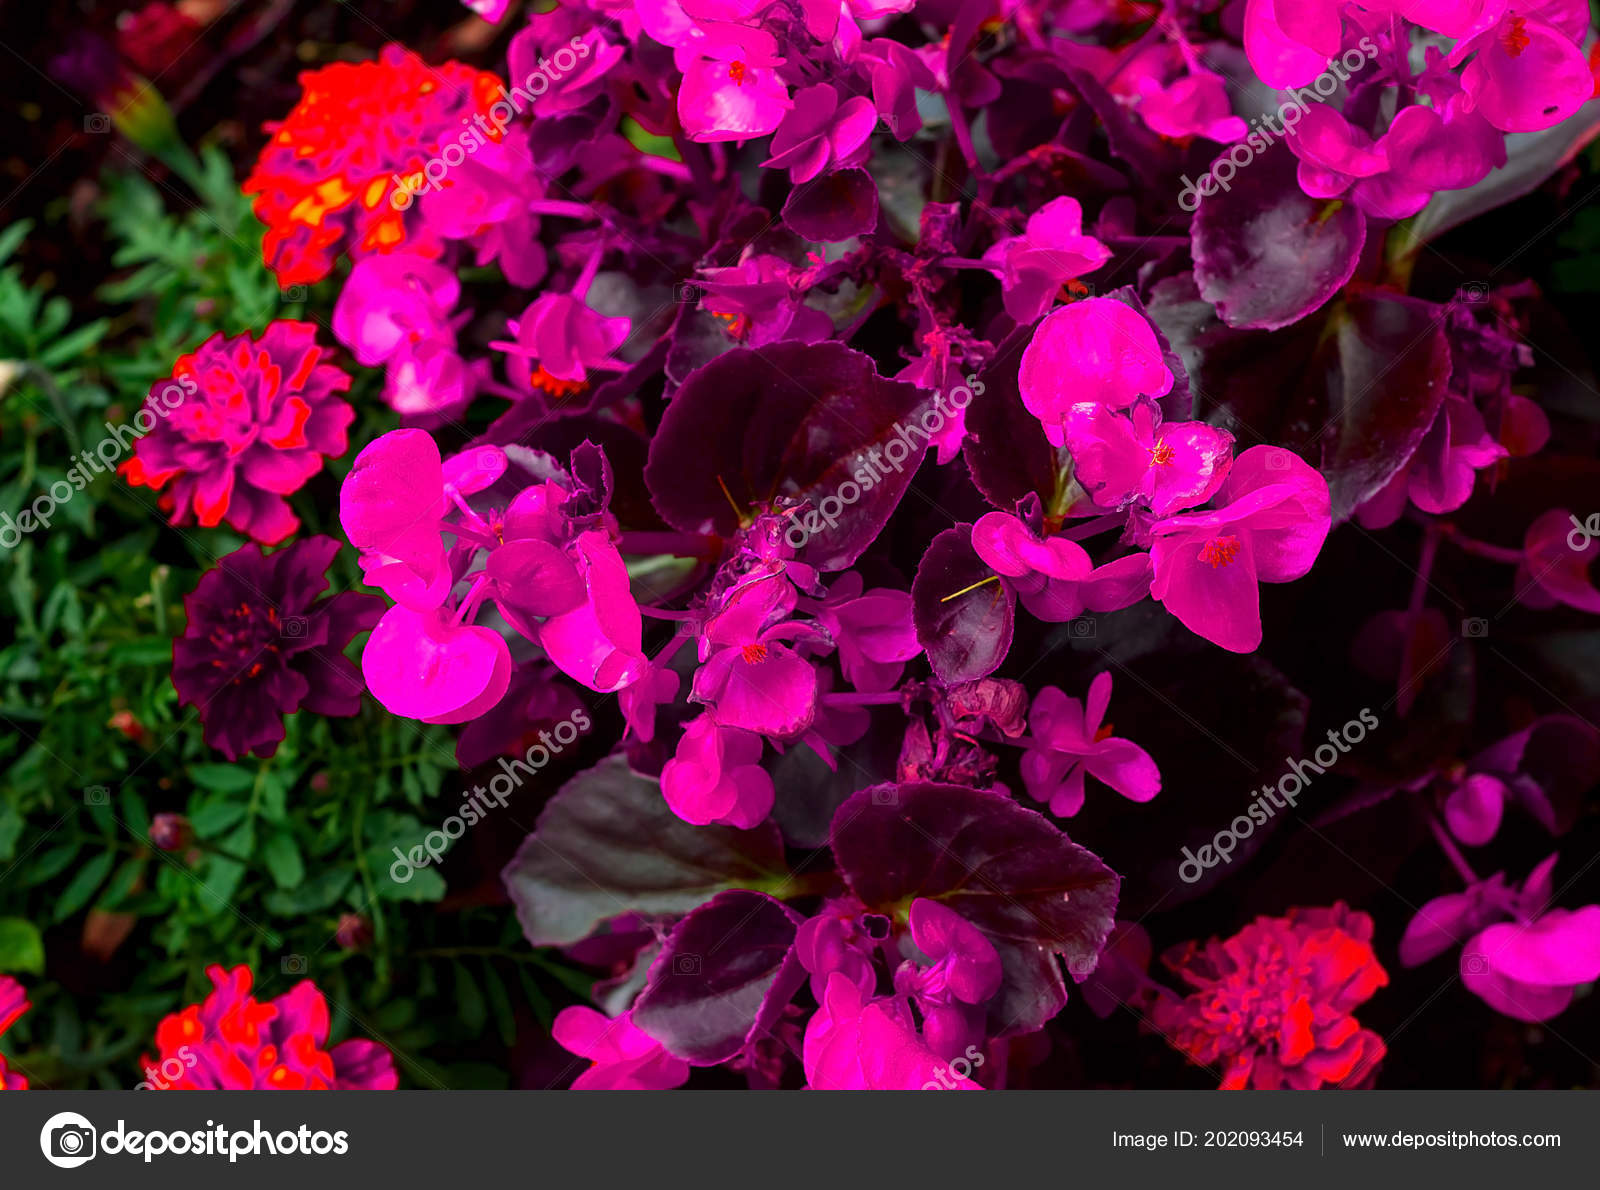 Blooming ultraviolet flowers in landscape design. Concept of urban decor, natural light, copy space, closeup– stock image